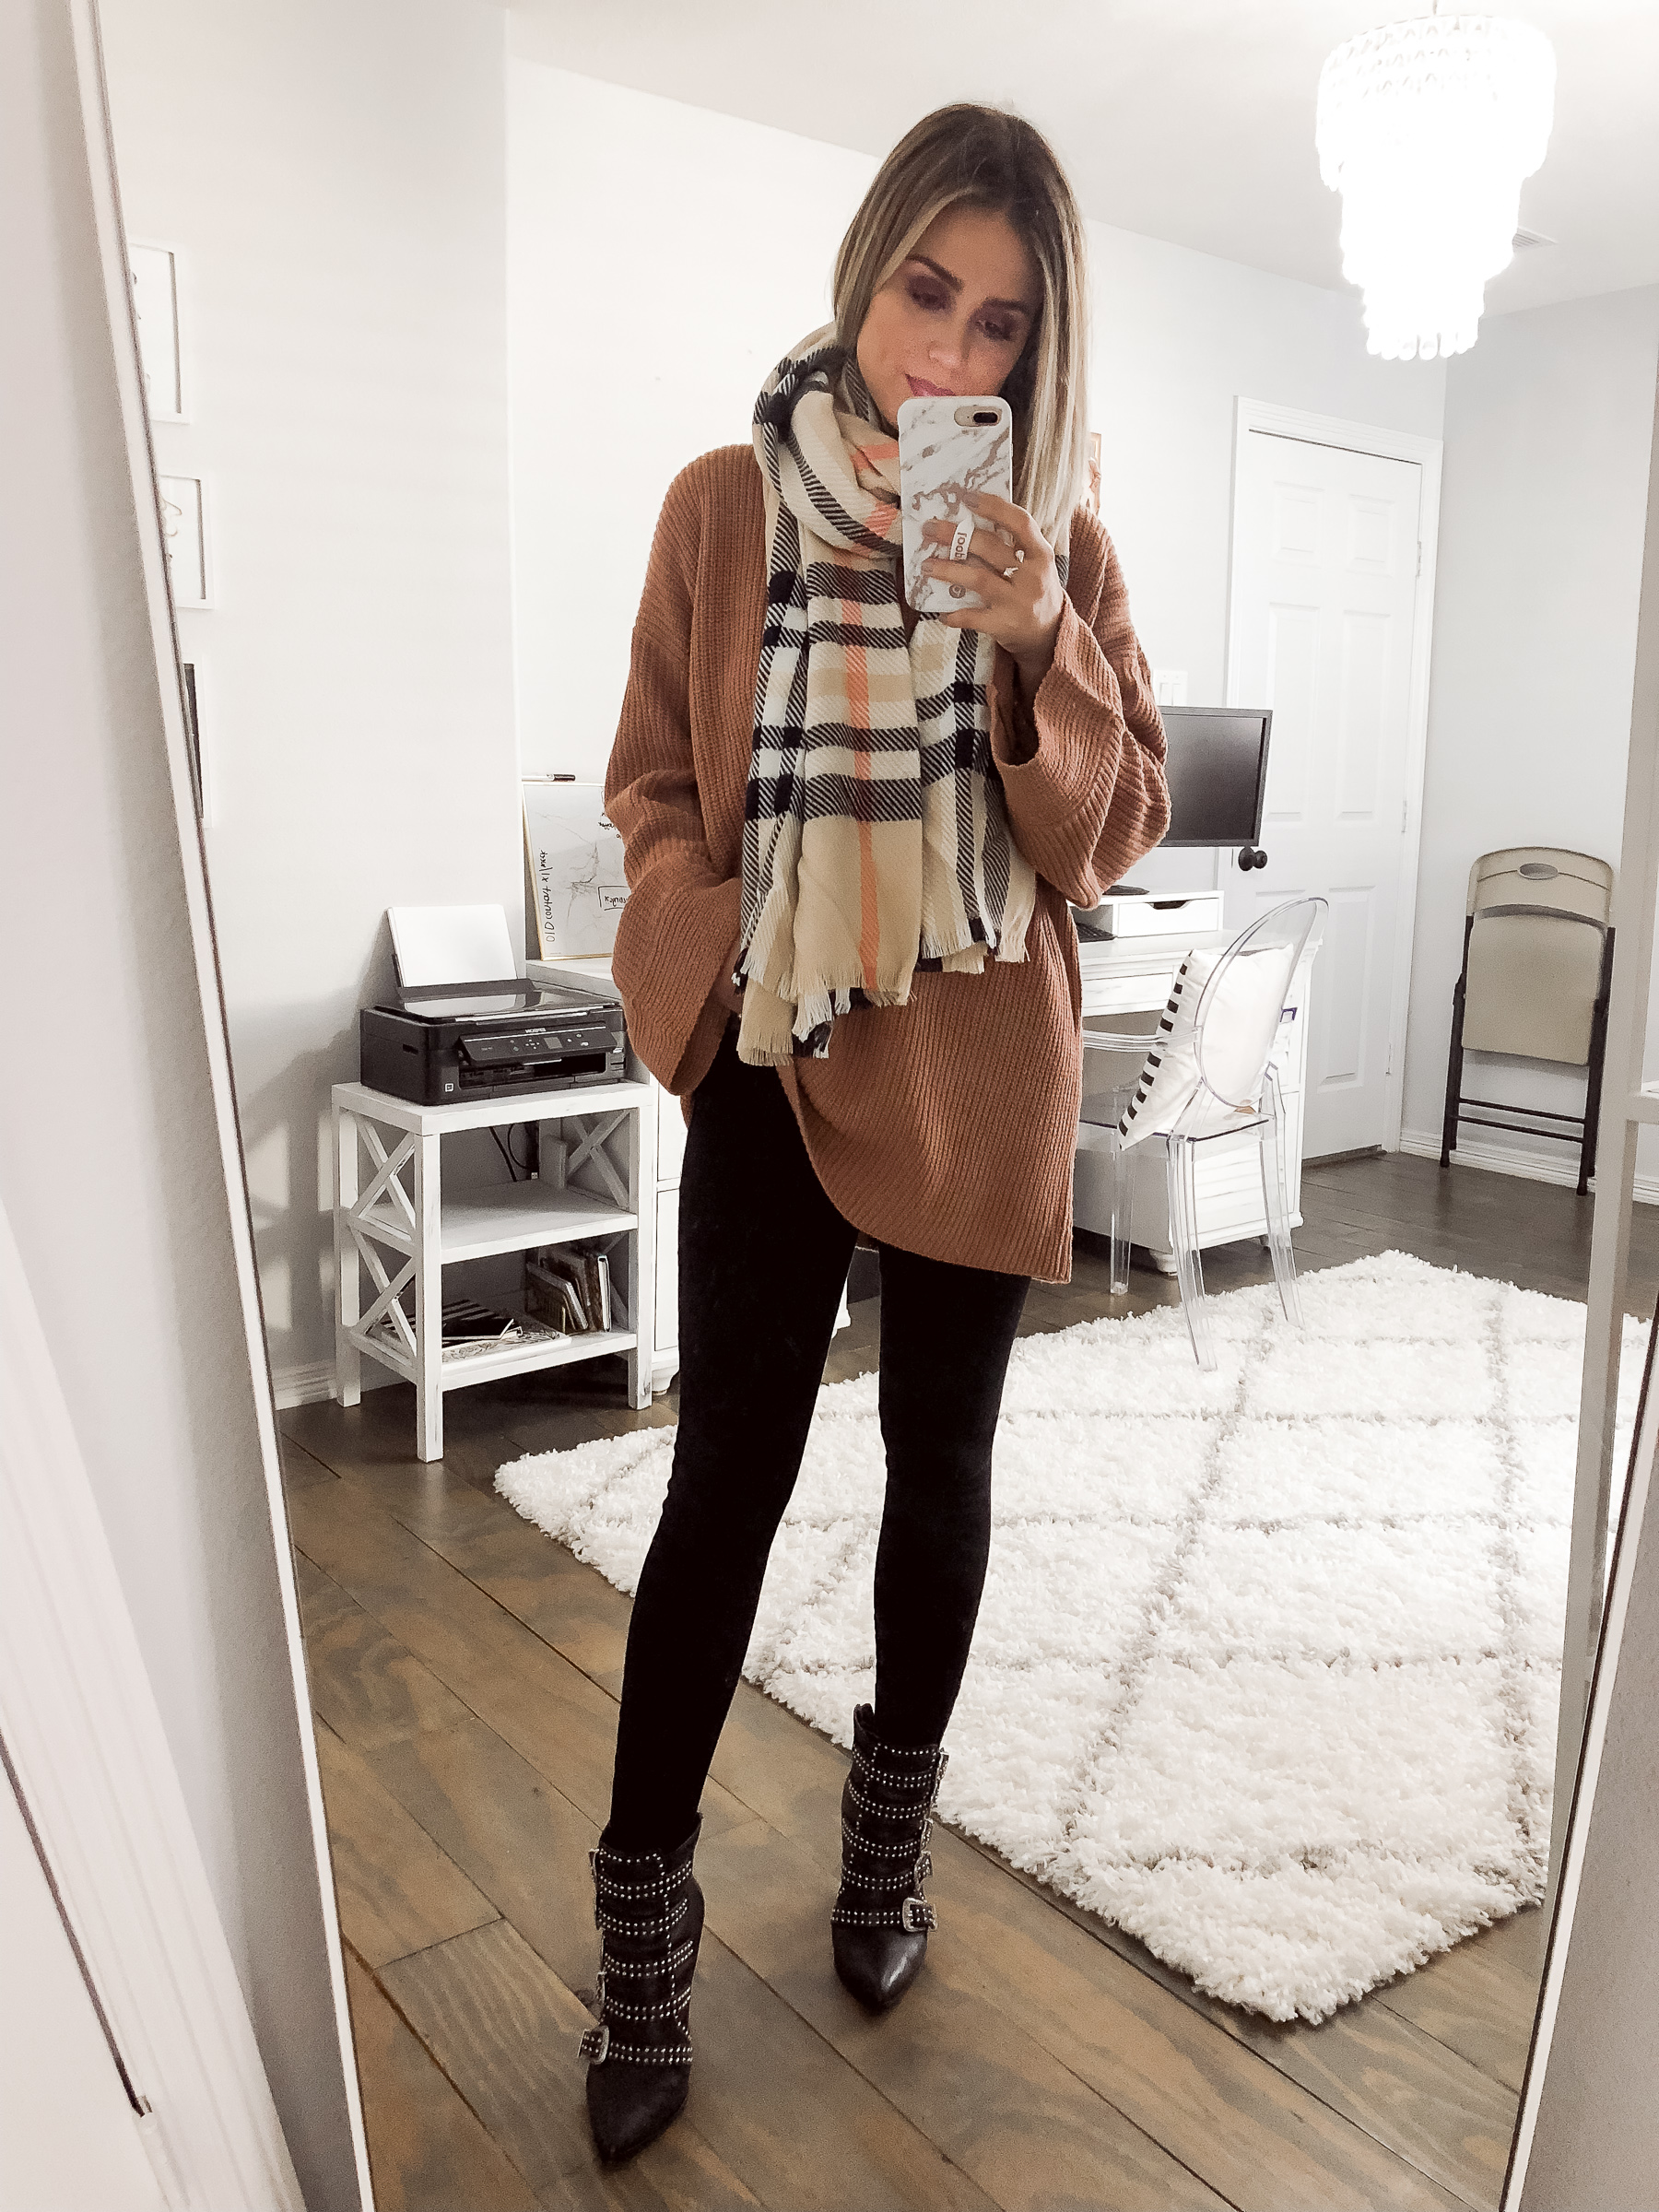 Houston fashion blogger Uptown with Elly Brown wears an oversized sweater for fall